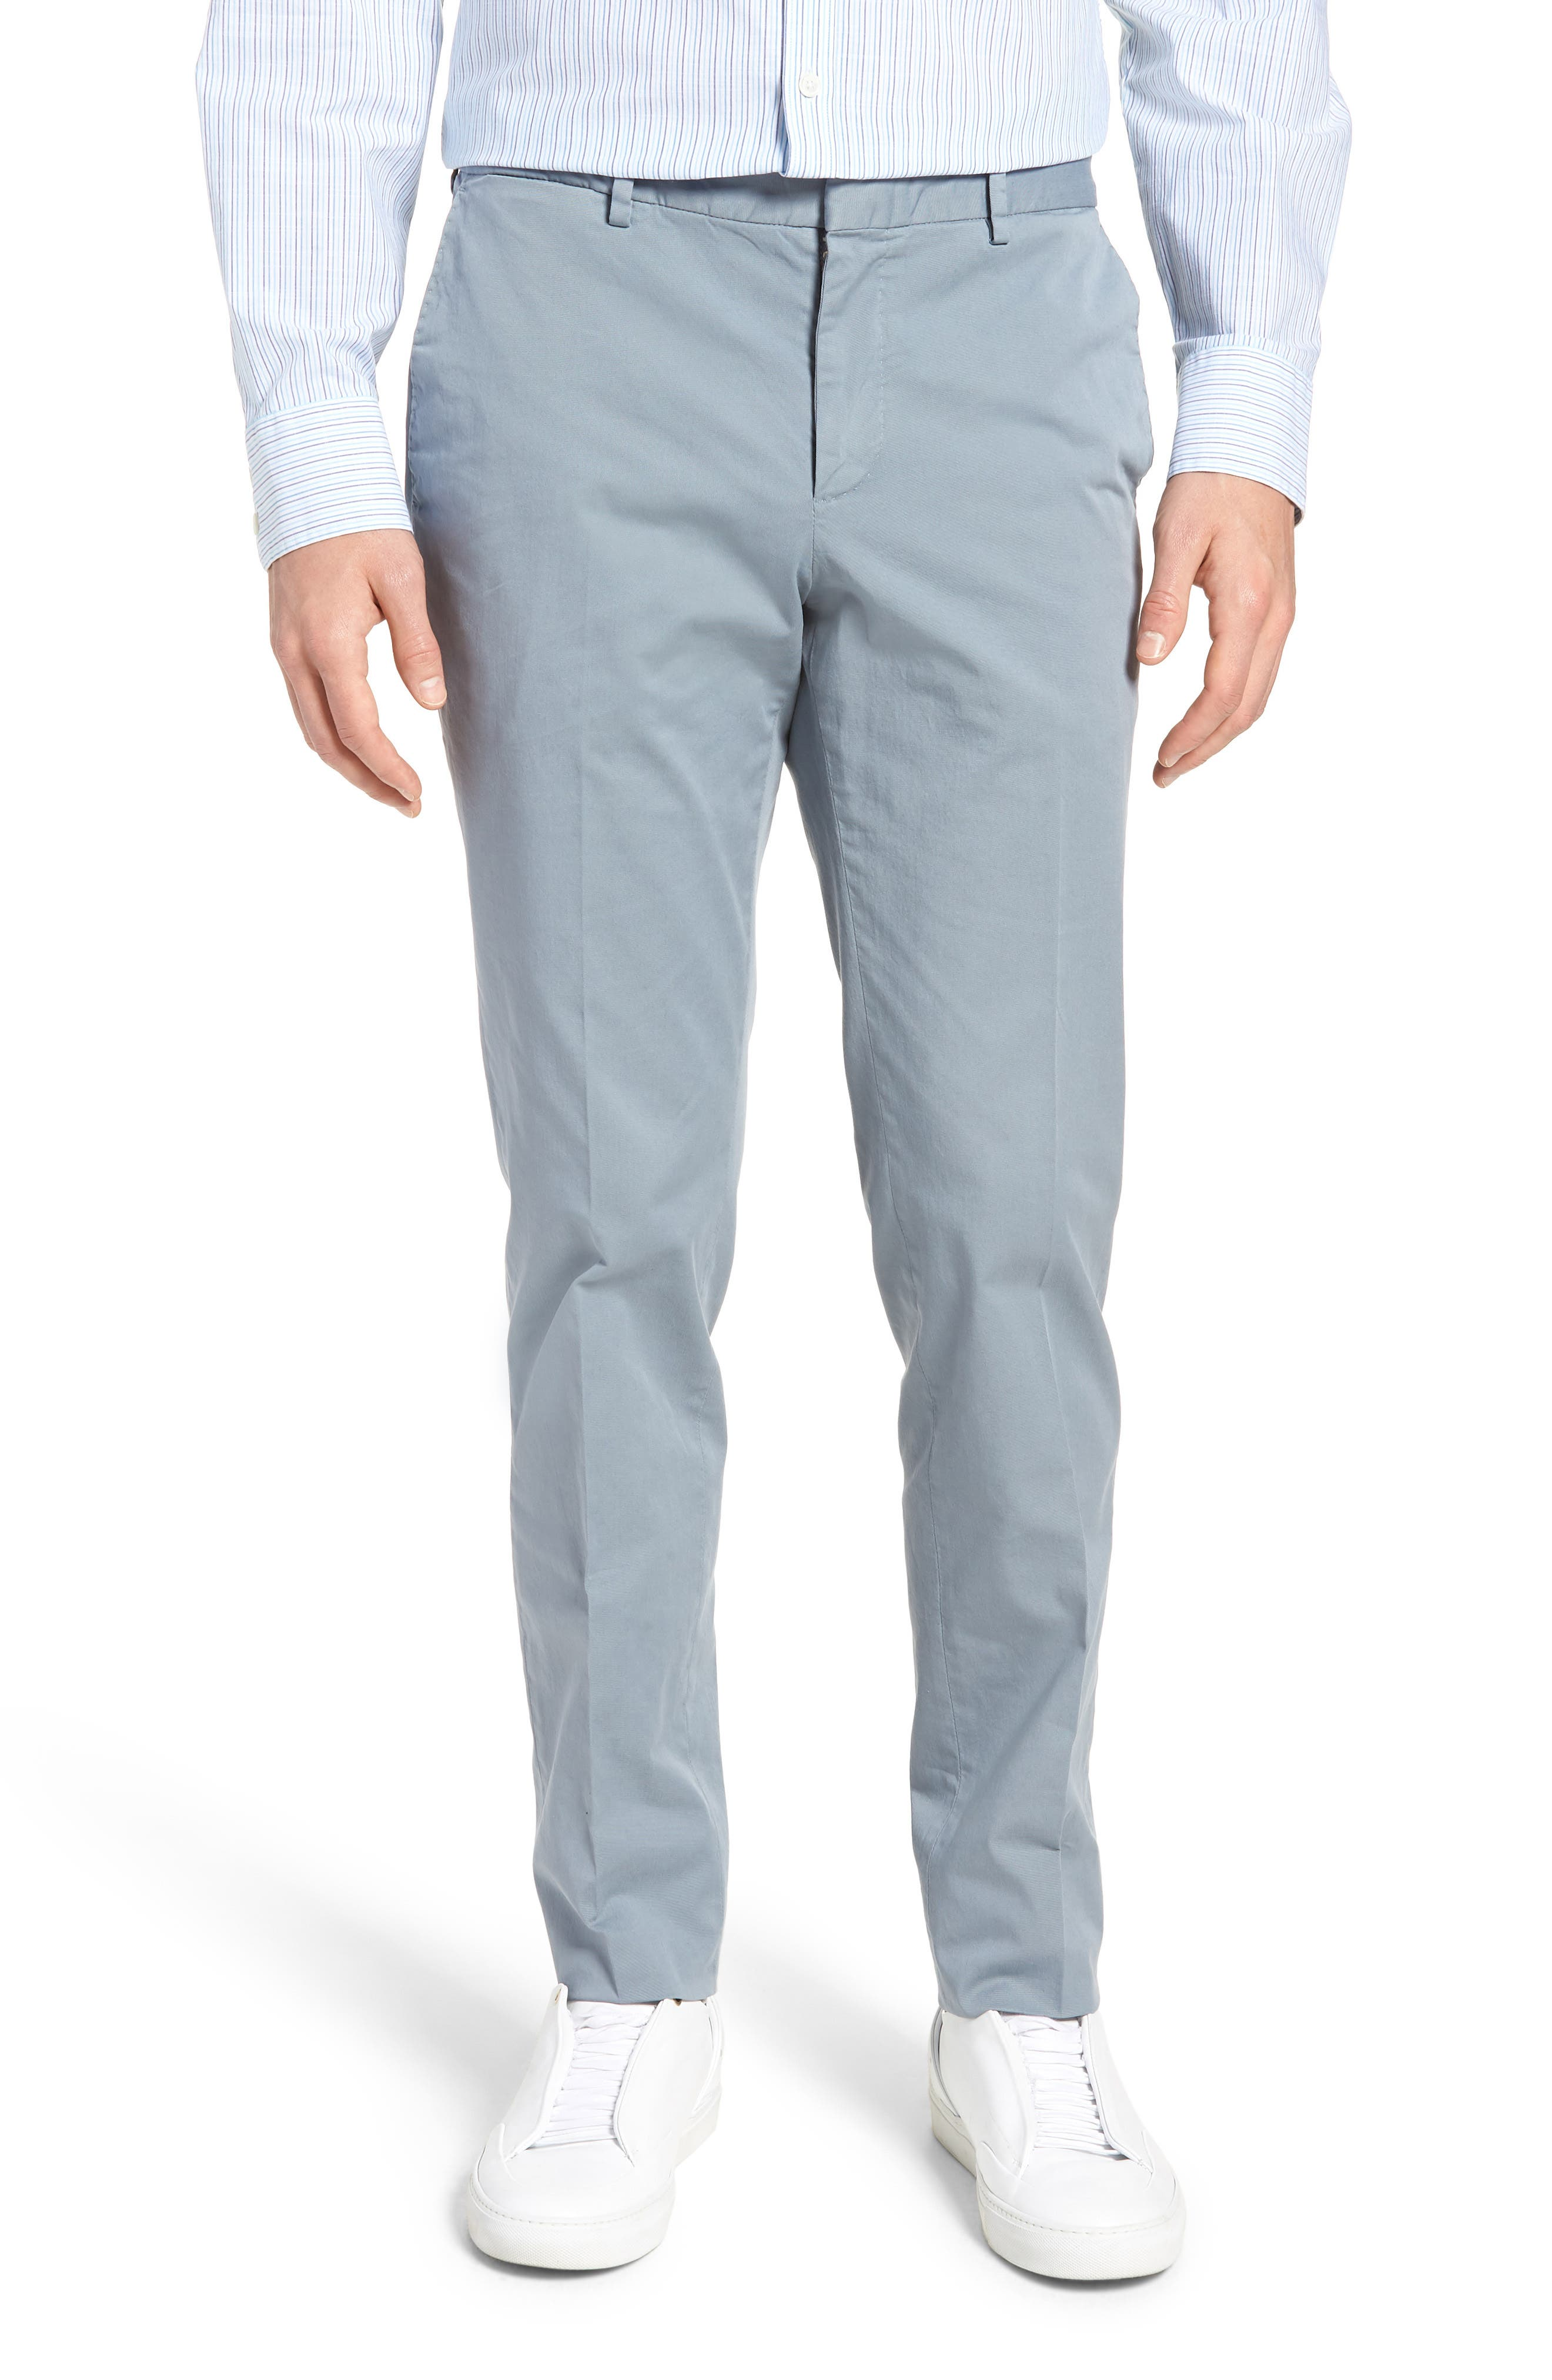 Barlow-D Flat Front Stretch Solid Cotton Trousers,                             Main thumbnail 1, color,                             Blue